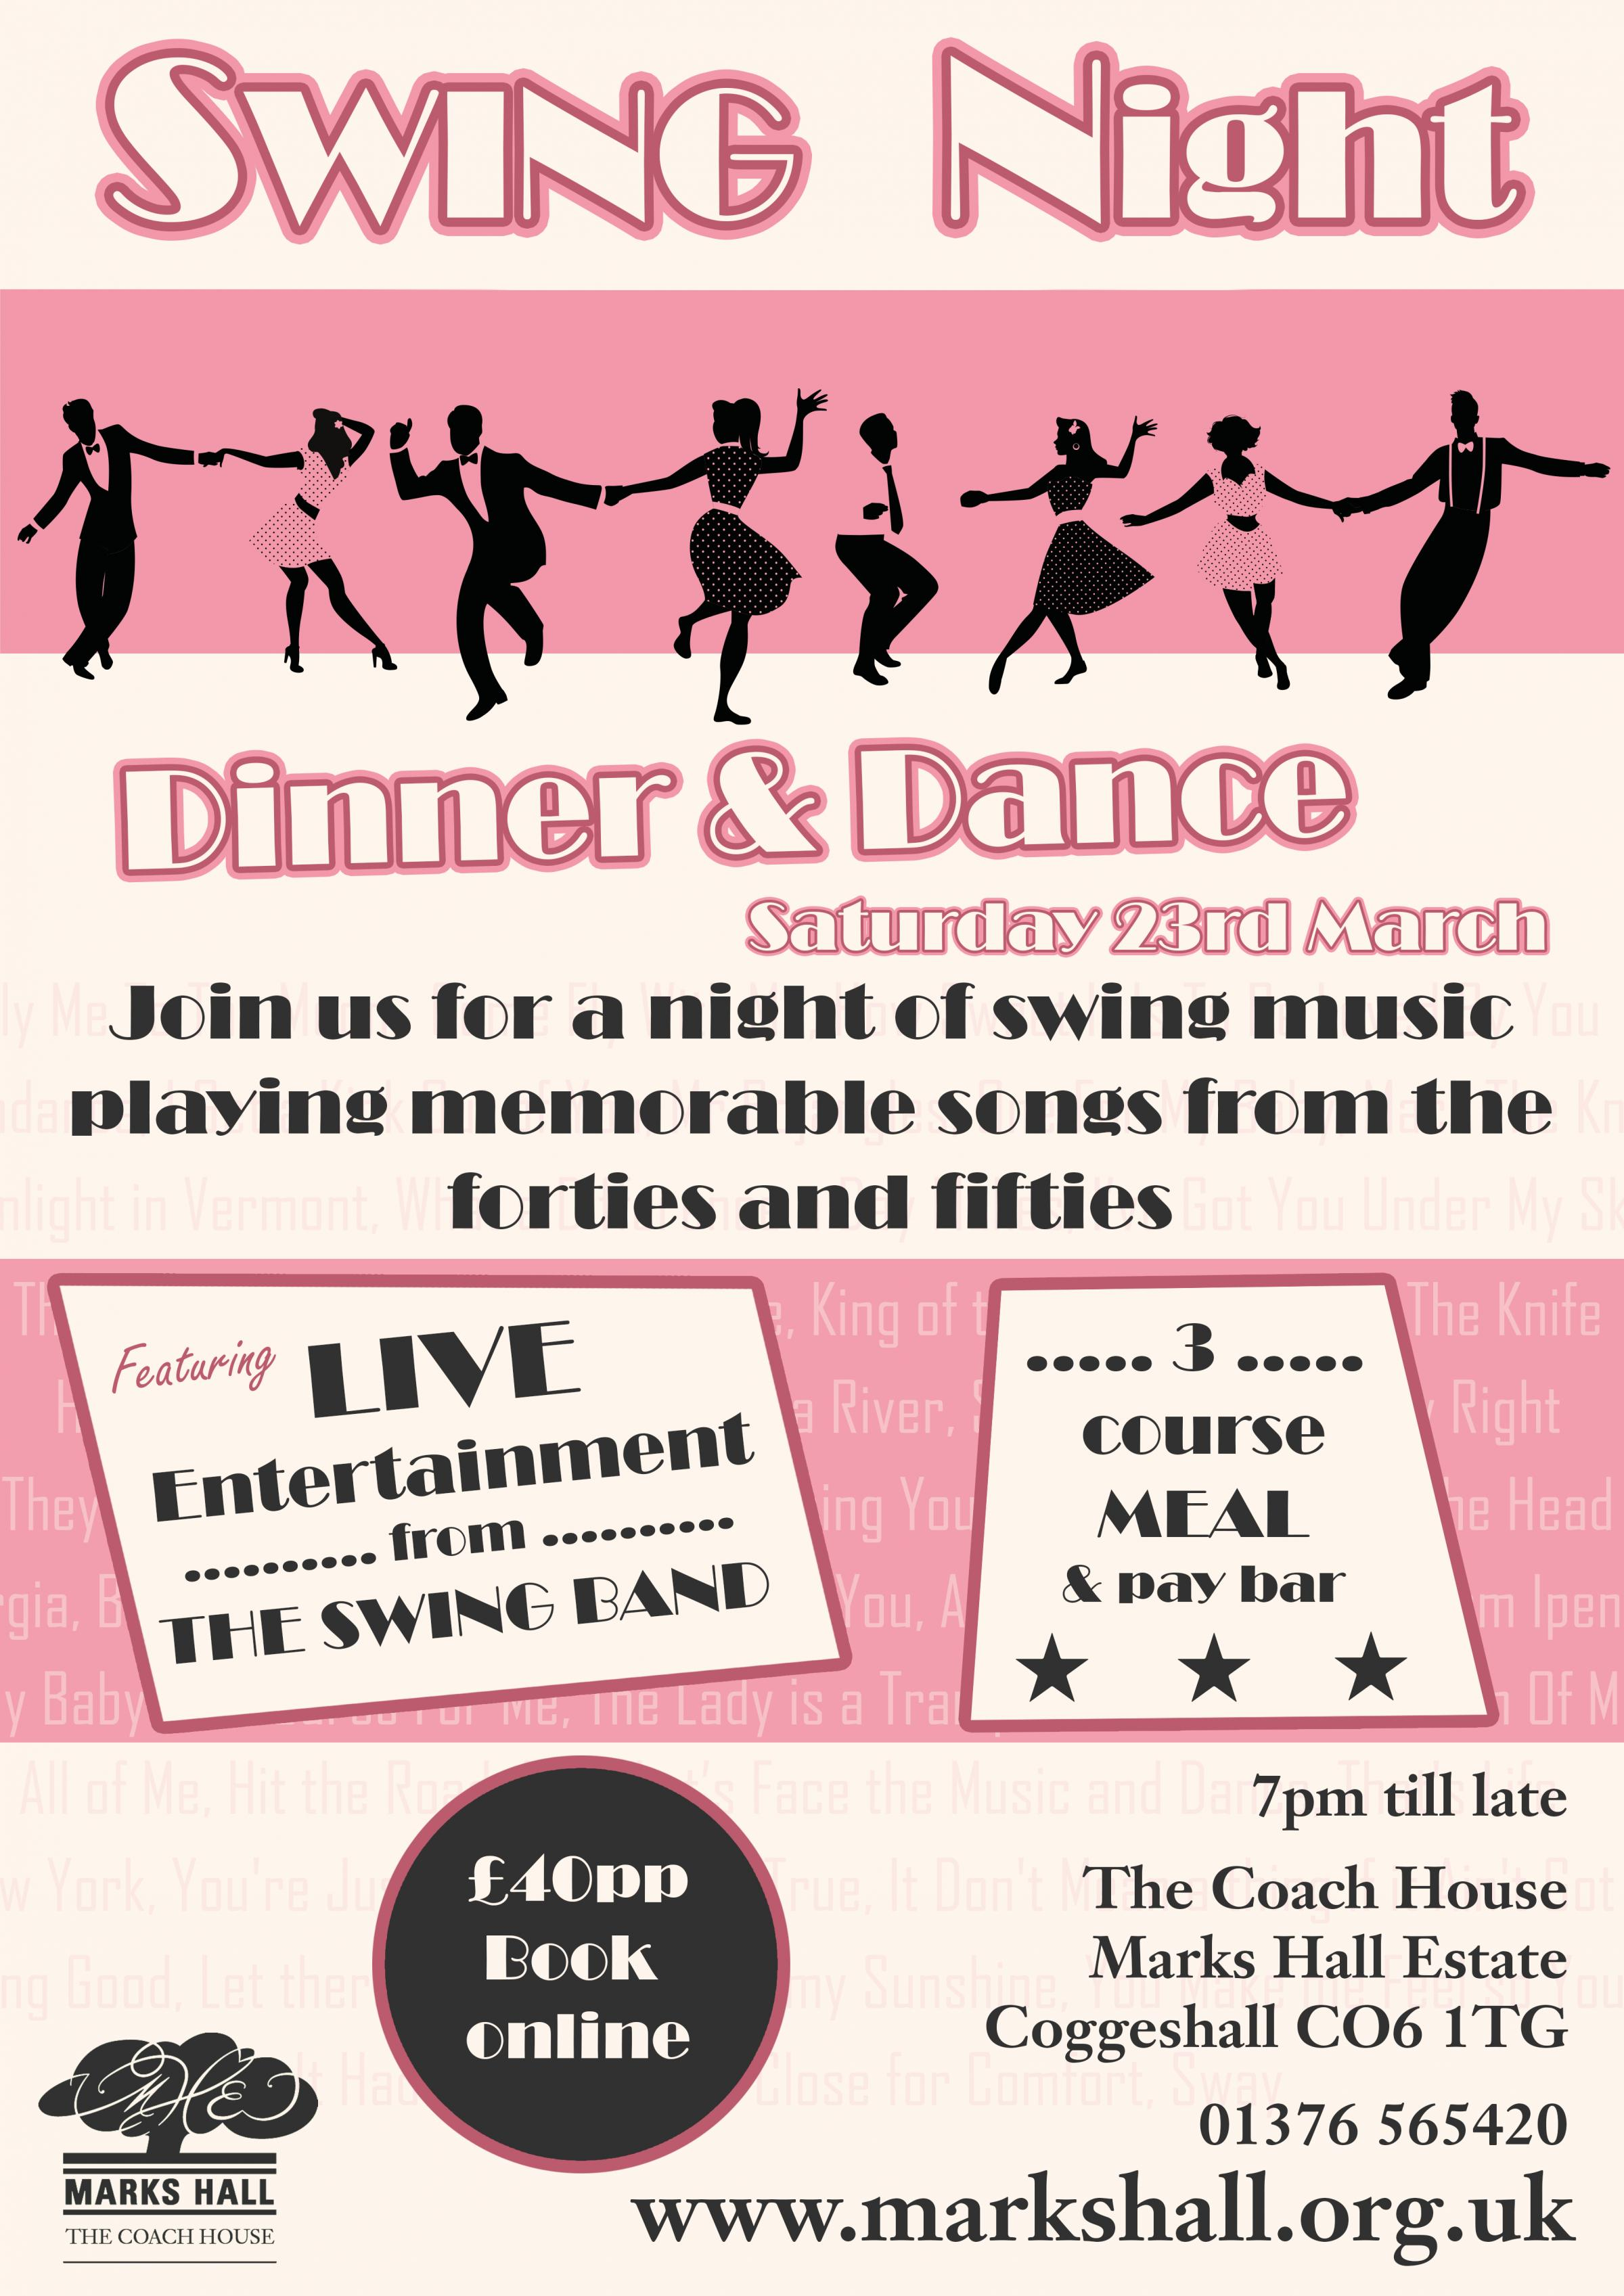 Swing Night - Dinner and Dance